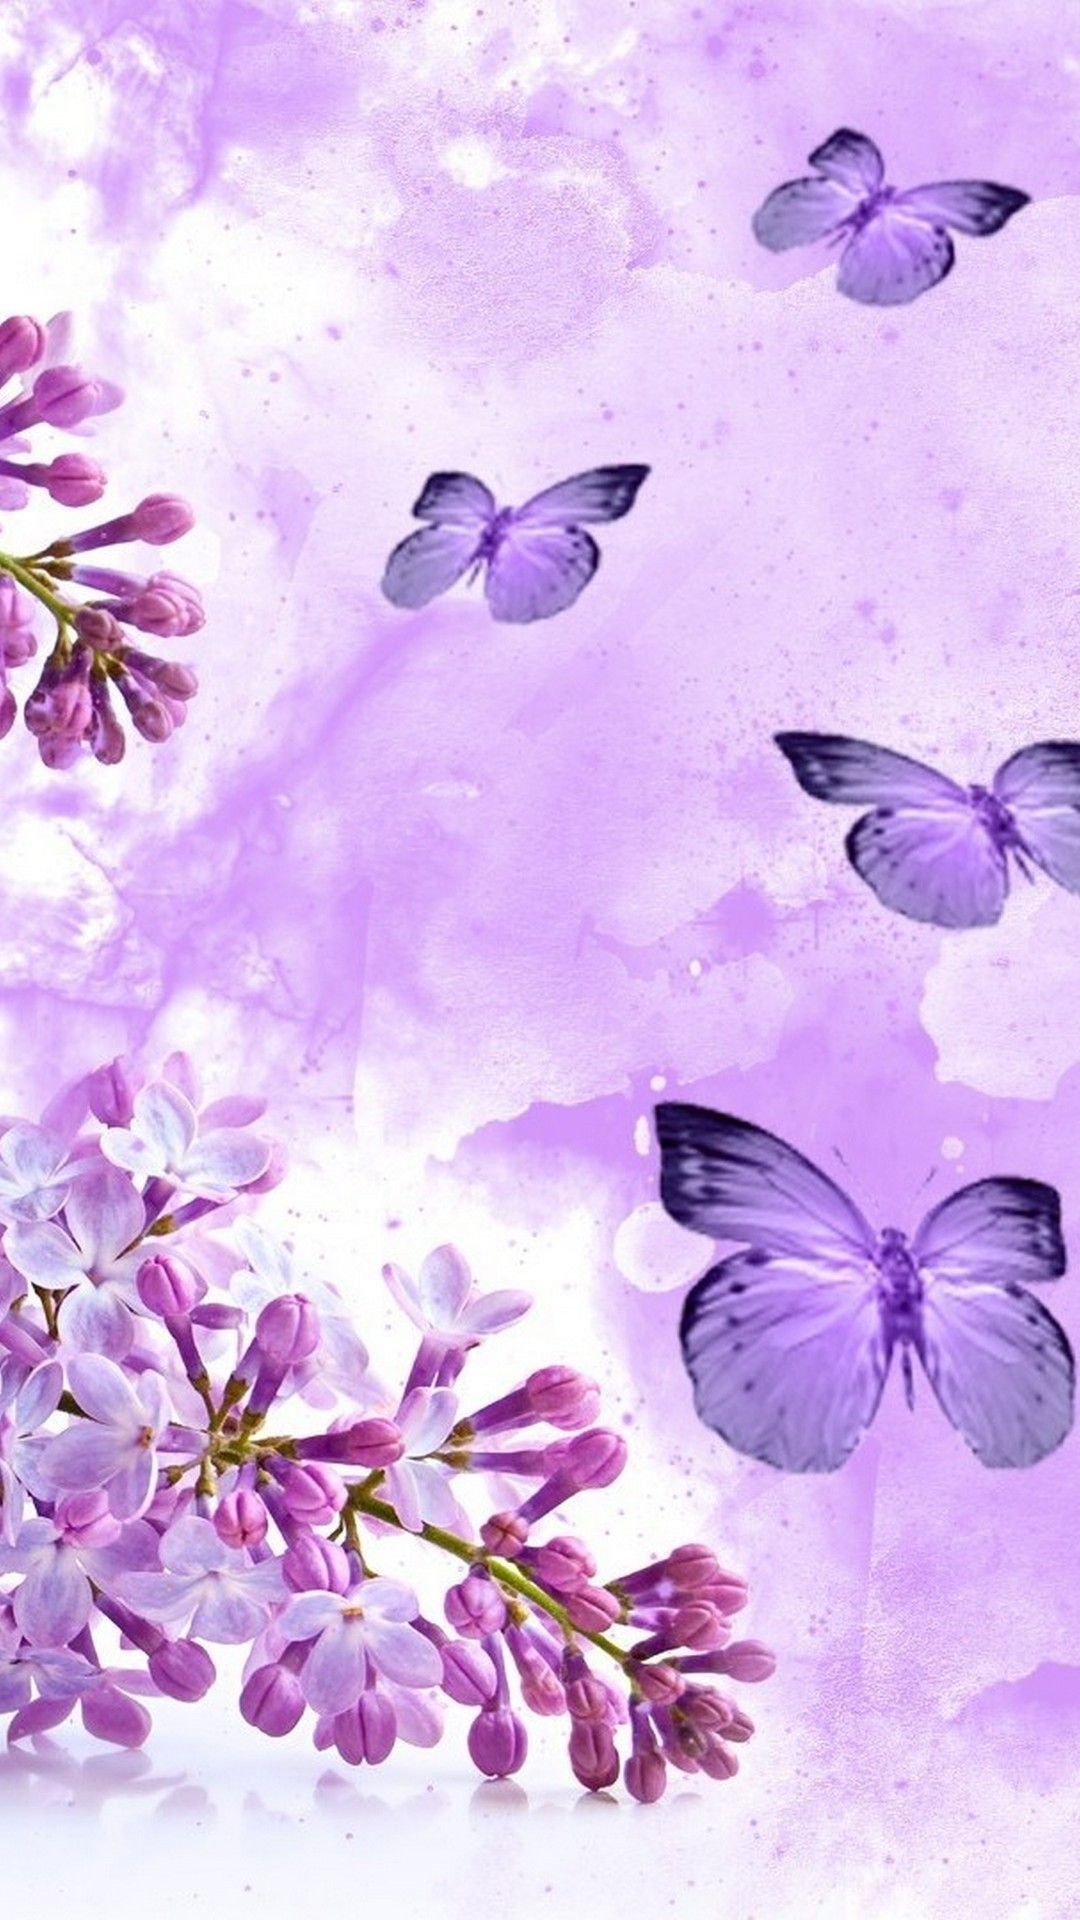 Cute Wallpapers Hd Full Size Cute Mobile Wallpapers Cute Flower Wallpapers Mobile Wallpaper Android